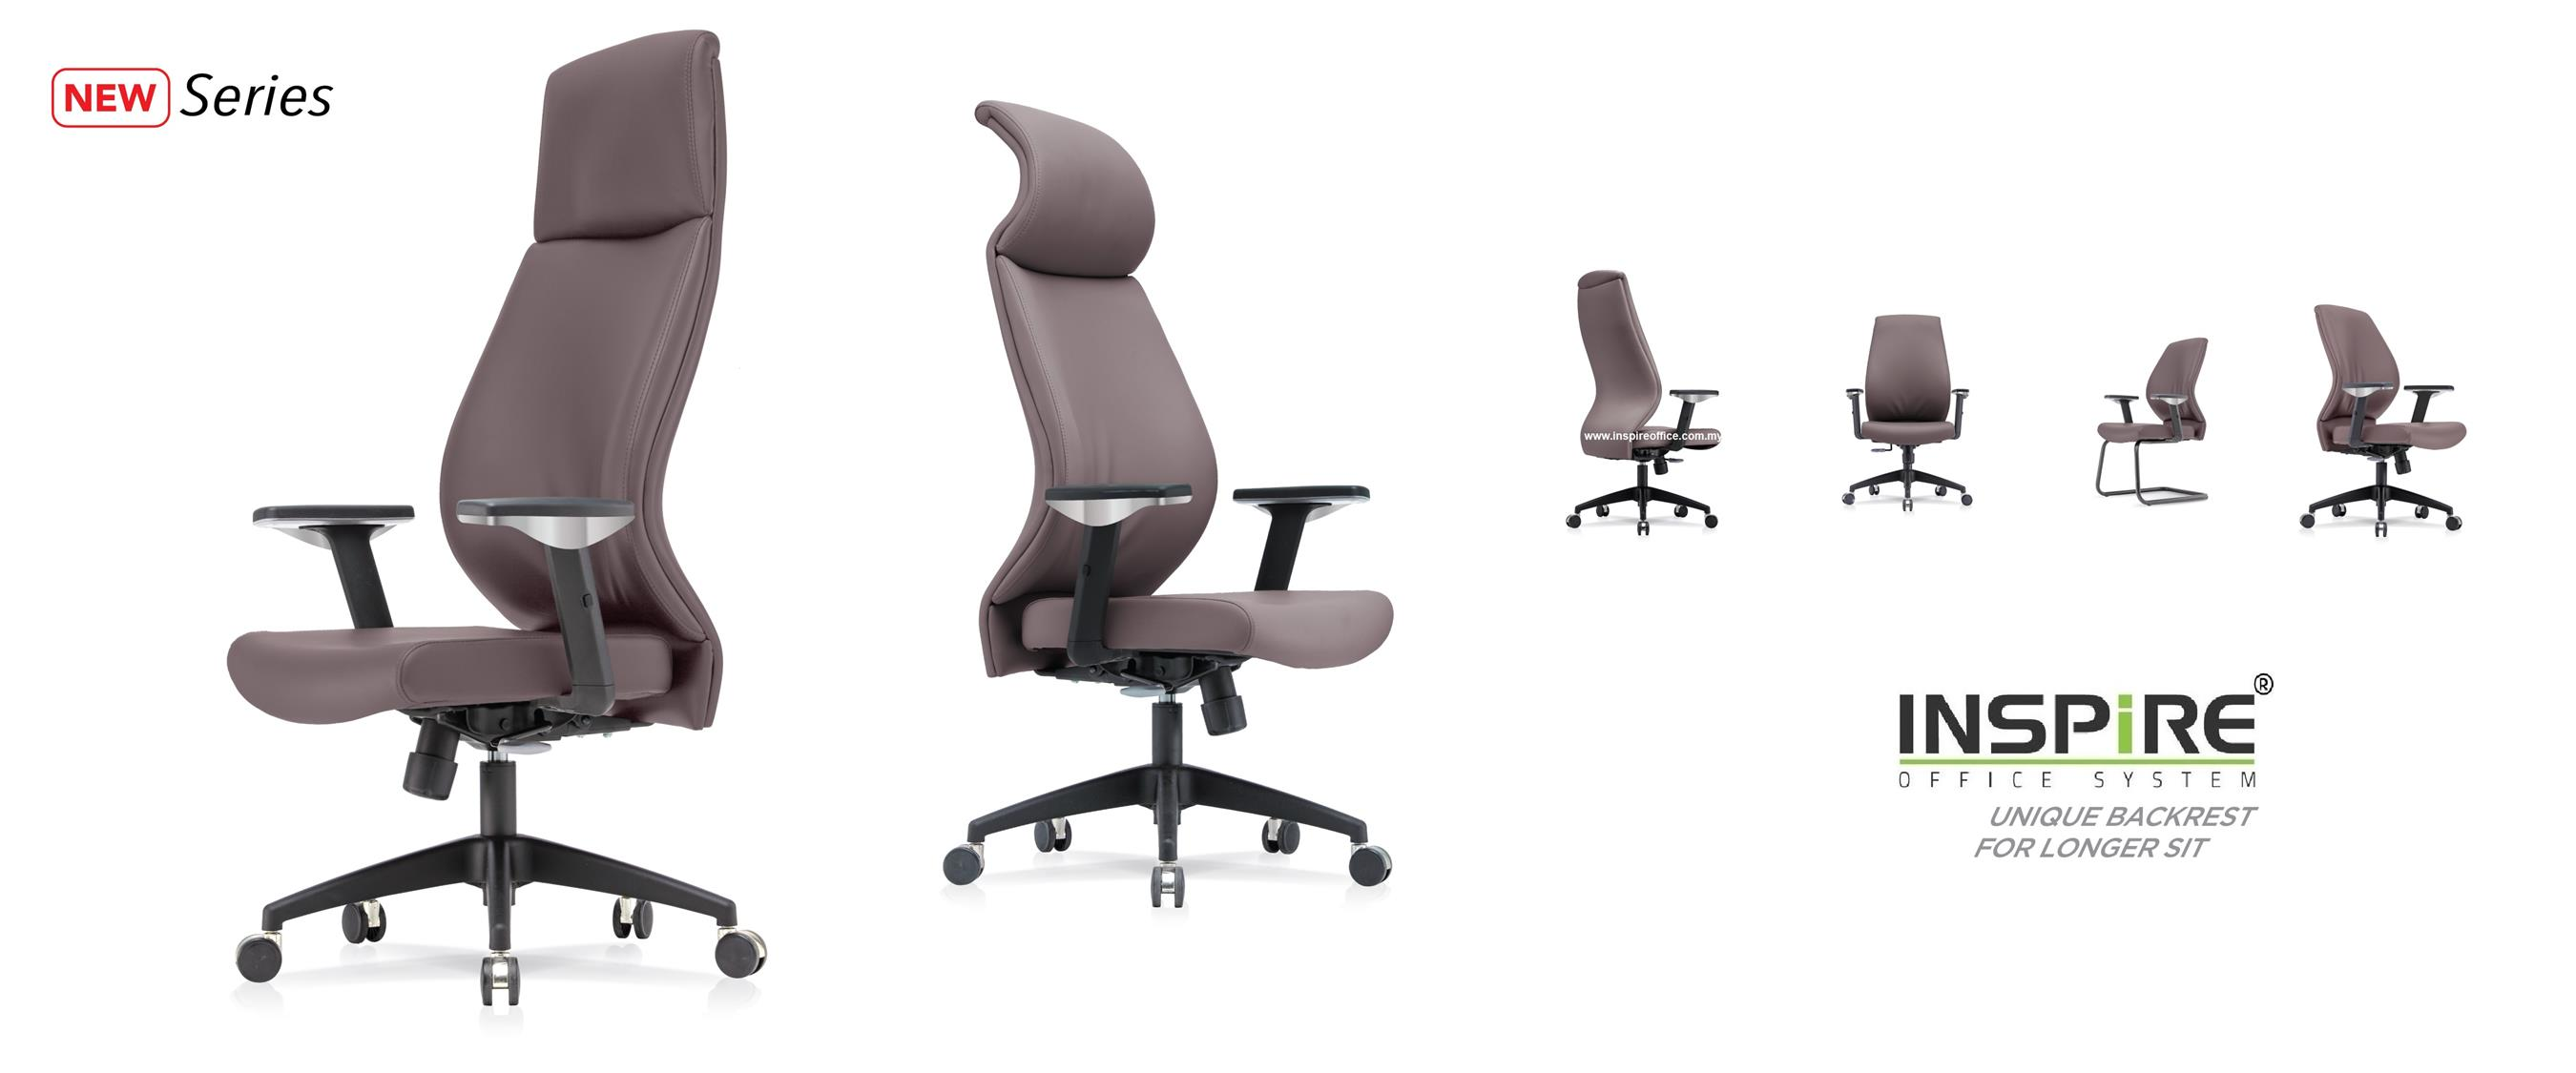 CELOSIA INS-3HB High Back PU/Fabric Office Chair